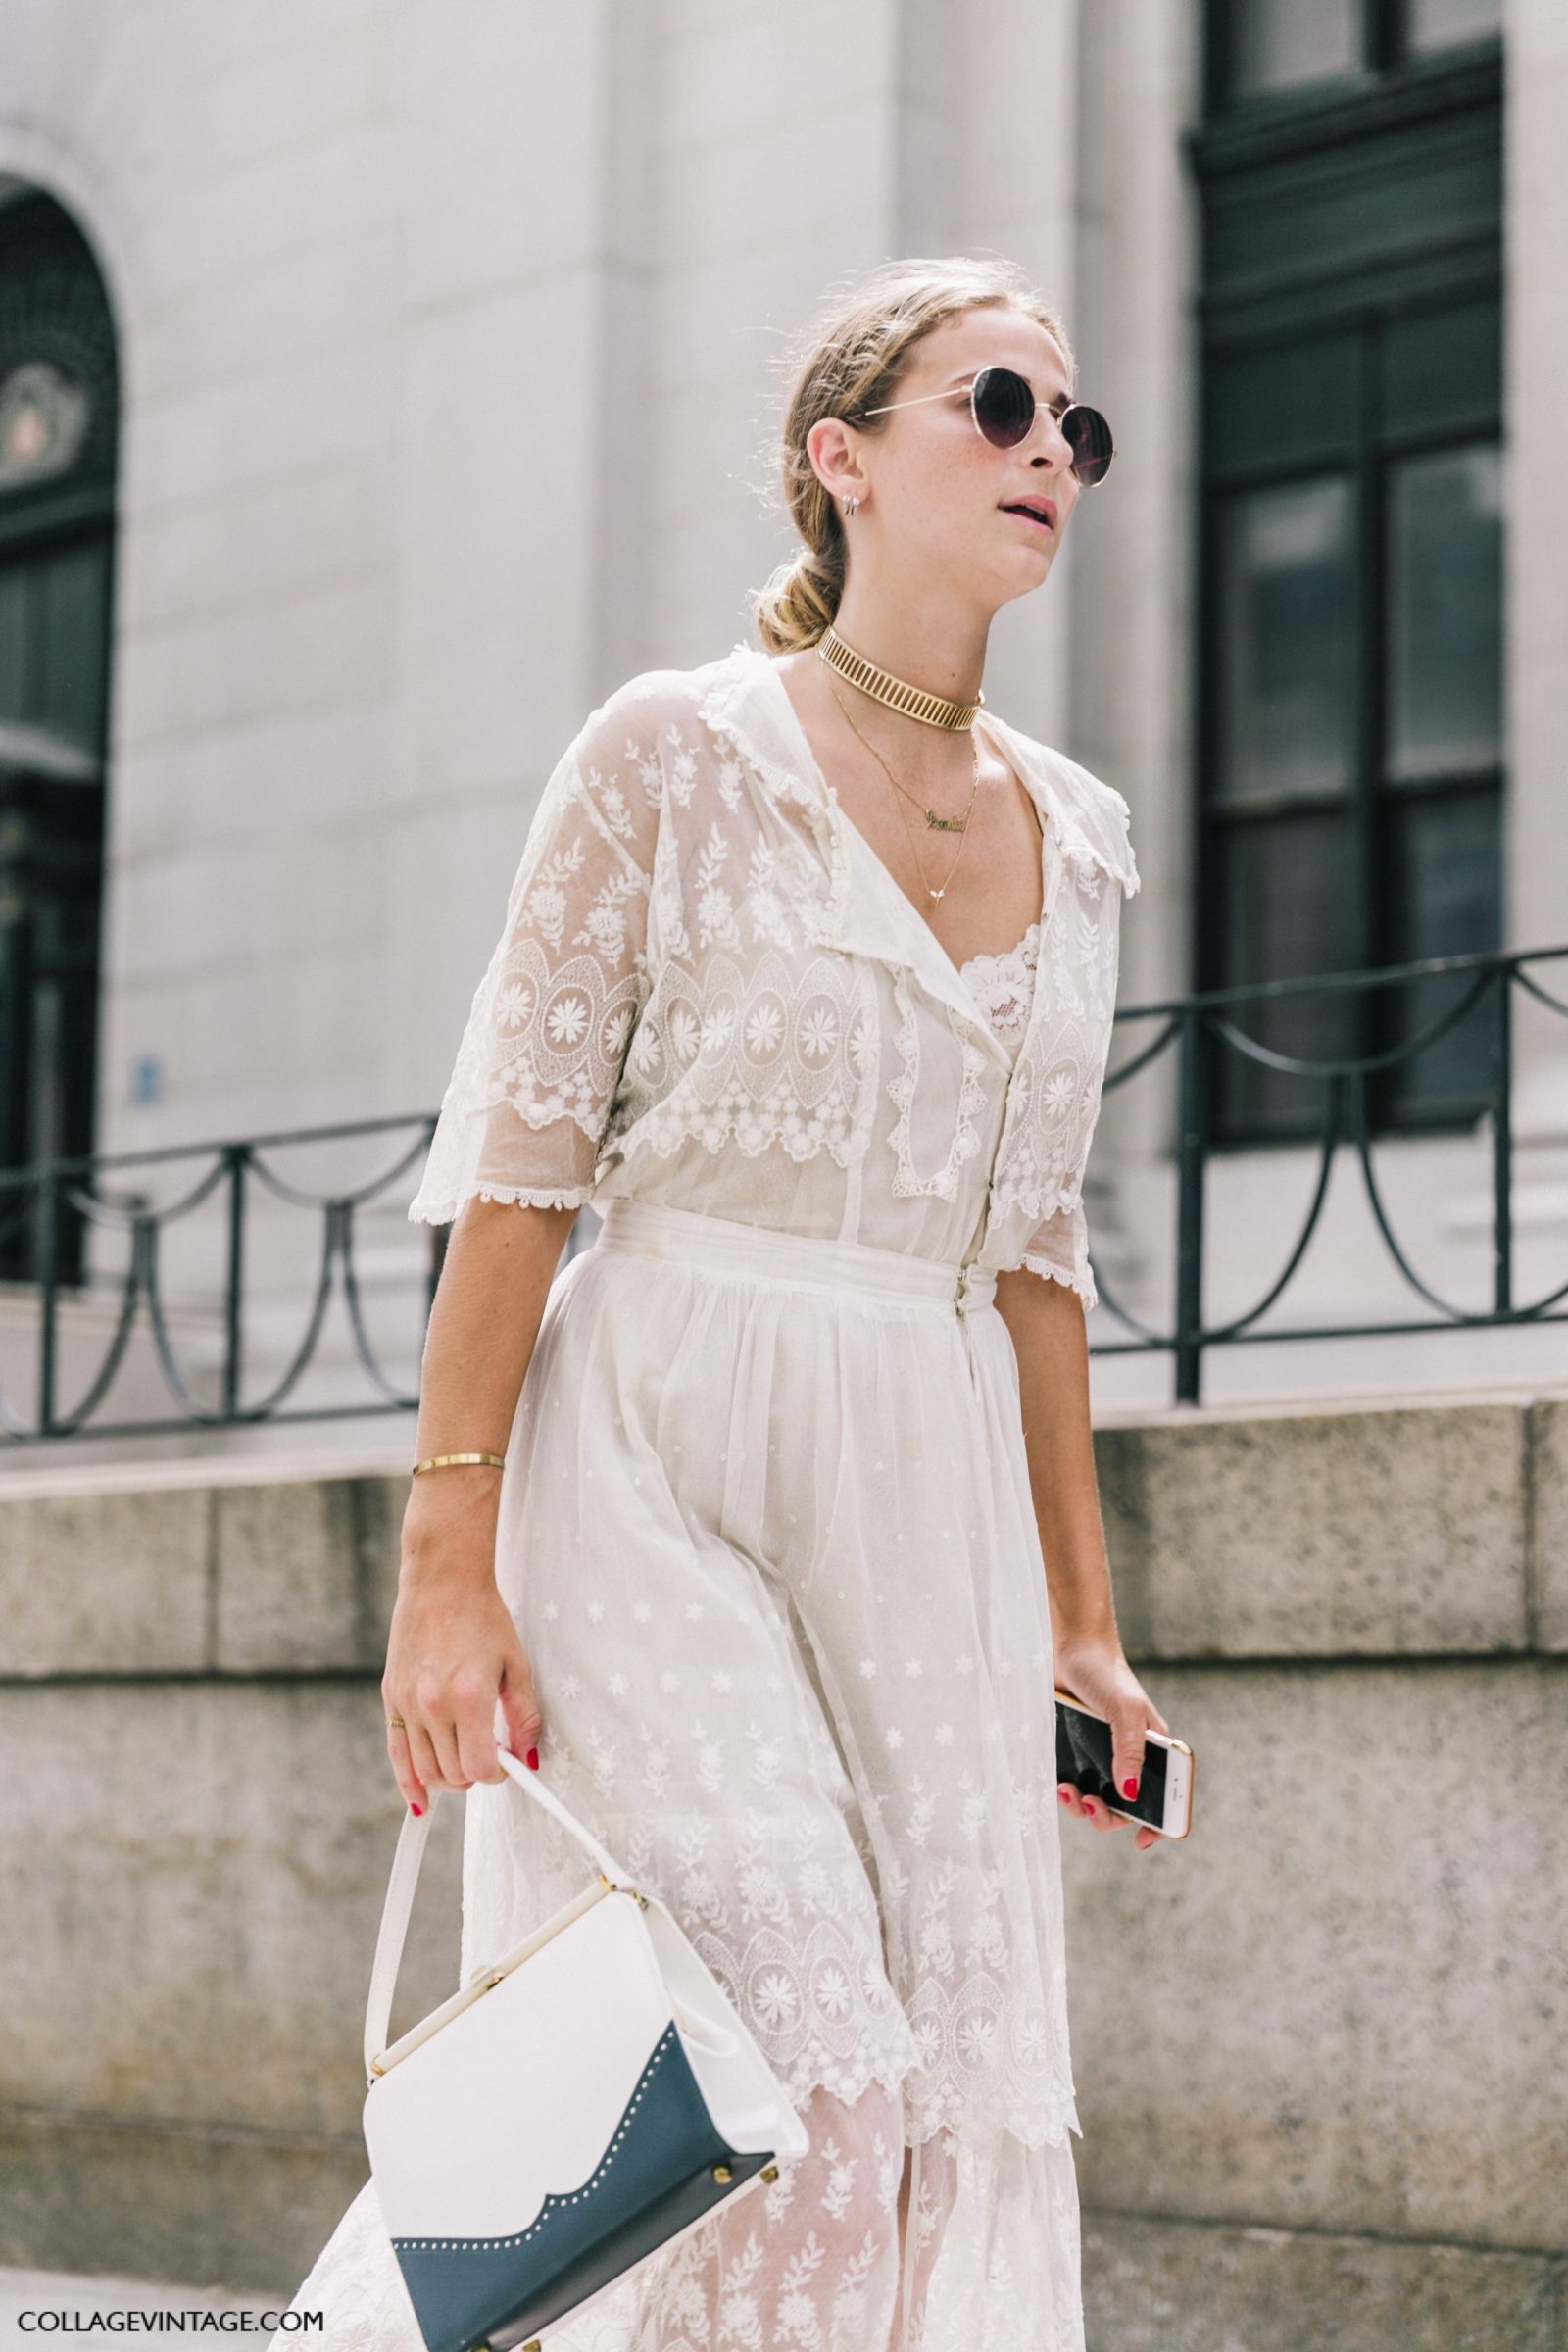 nyfw-new_york_fashion_week_ss17-street_style-outfits-collage_vintage-vintage-tome-90